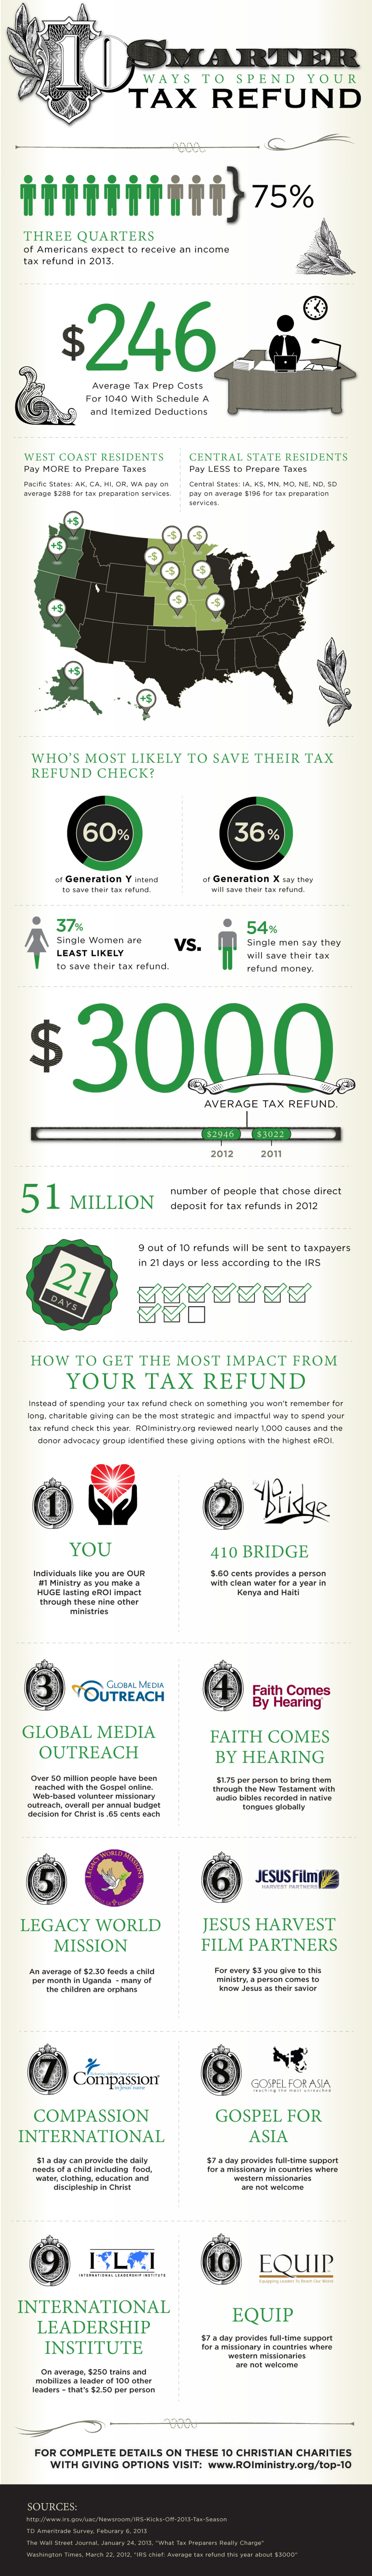 10 Smarter Ways To Spend Your 2013 Tax Refund Infographic